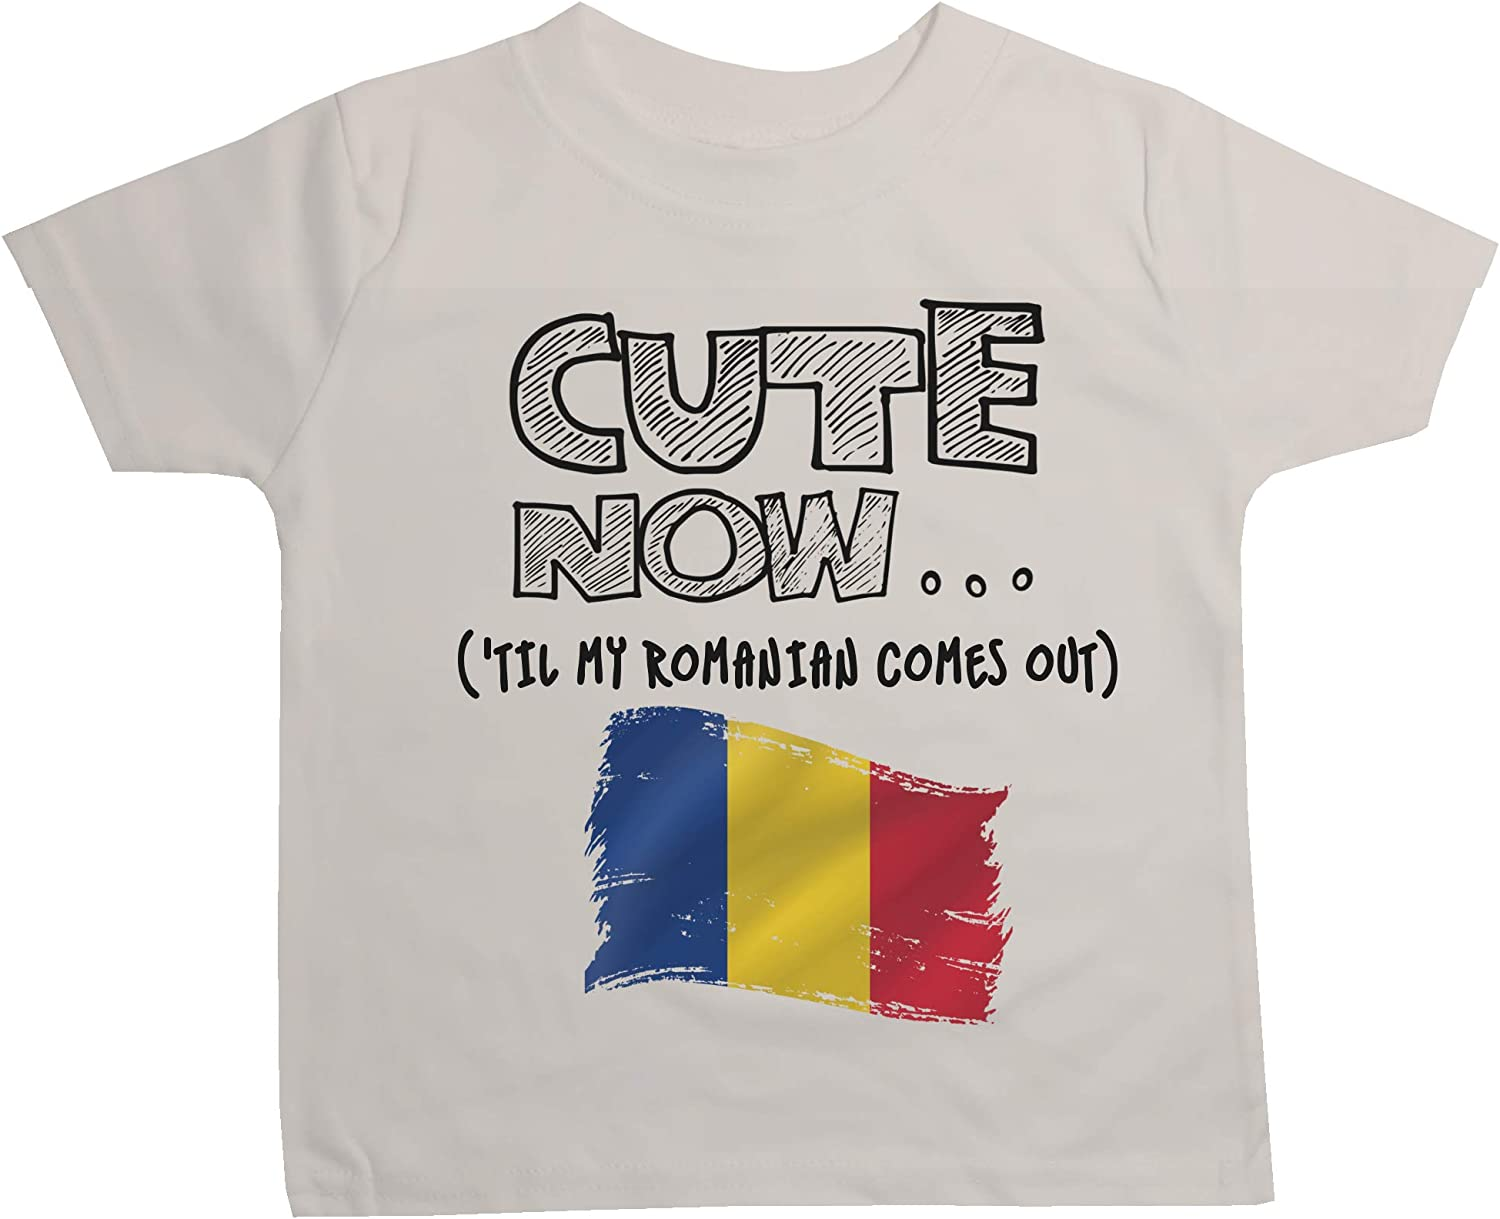 Cute Now Toddler Romania T-Shirt Til My Romanian Comes Out Kids Shirt Top in White 2T-4T